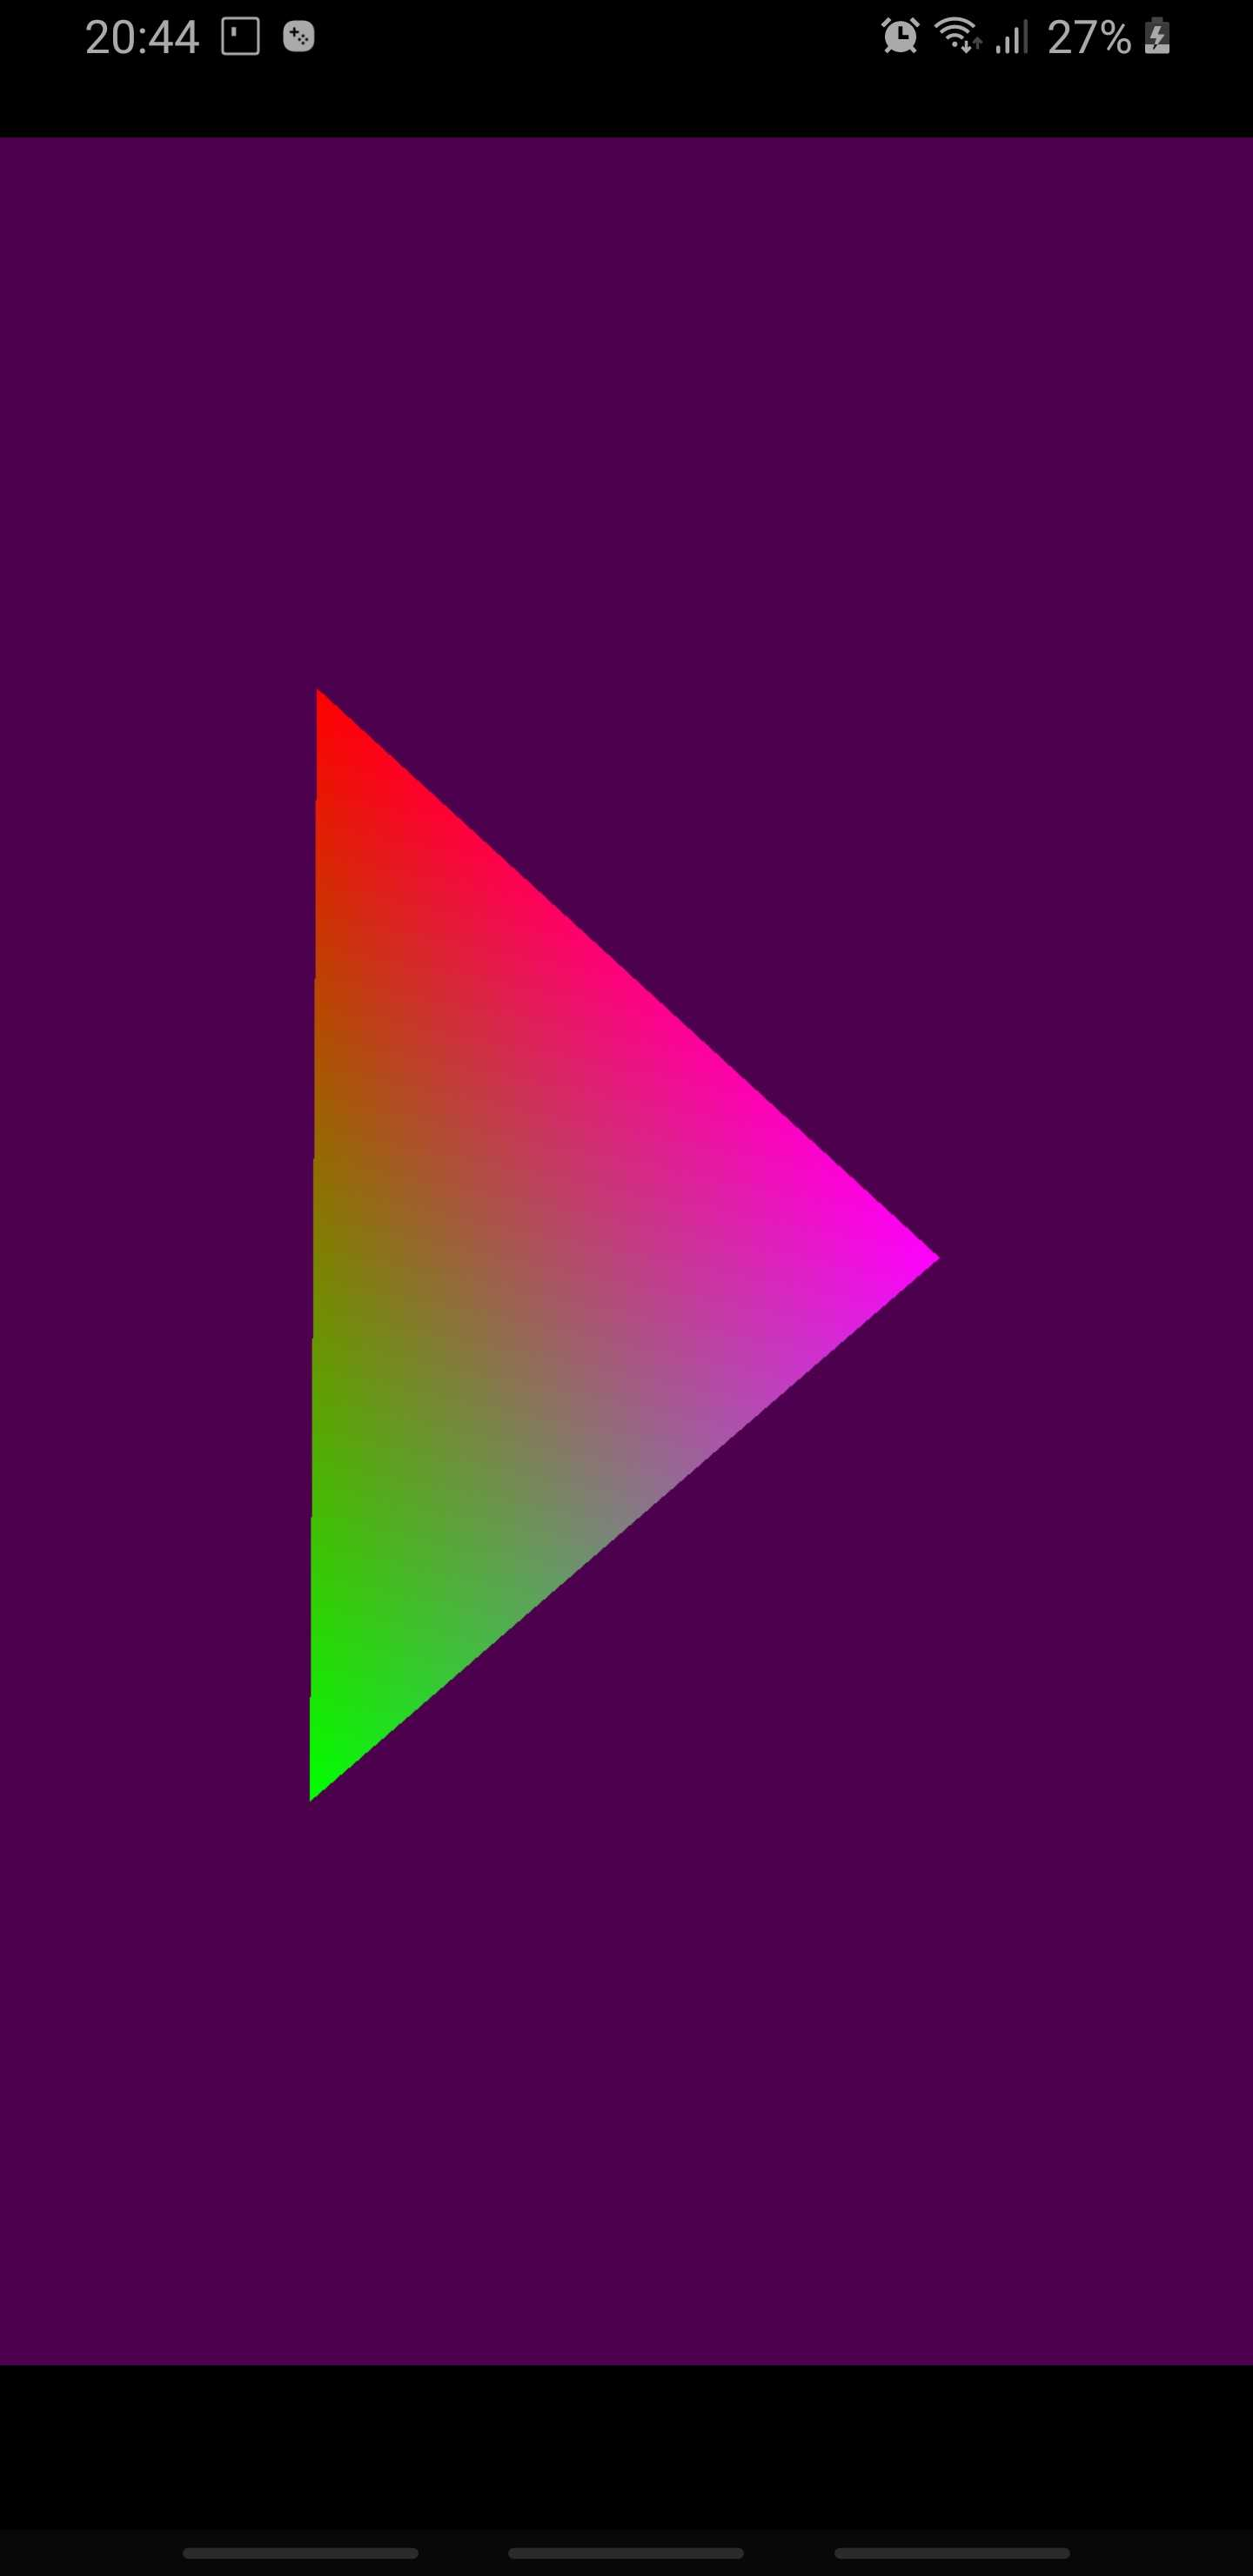 OpenGL ES 3 multicolour triangle rendered from Lua